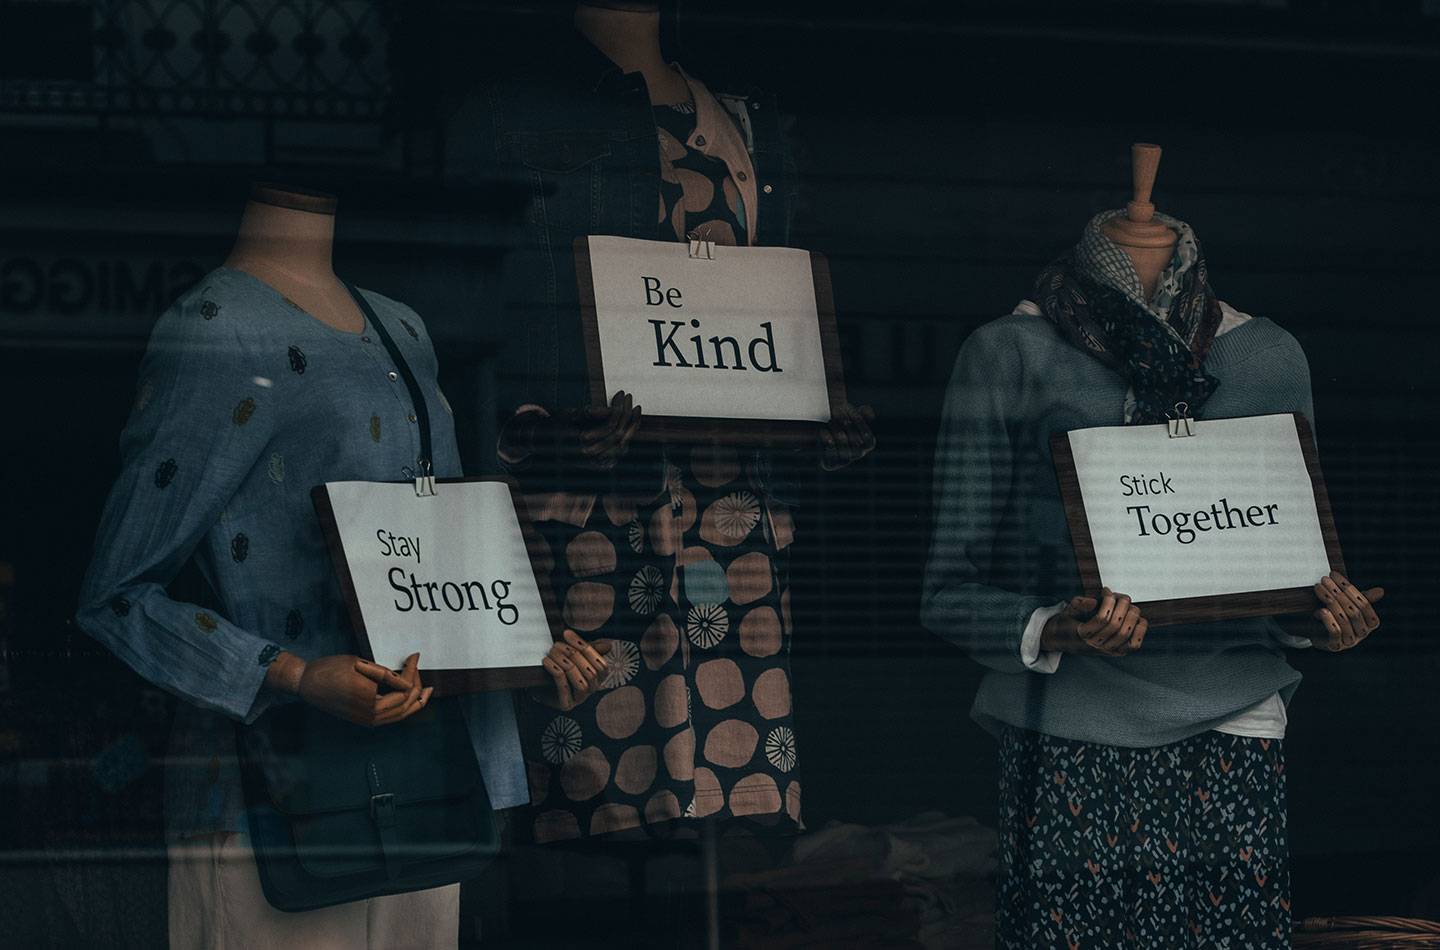 mannequins holding supportive messages during pandemic